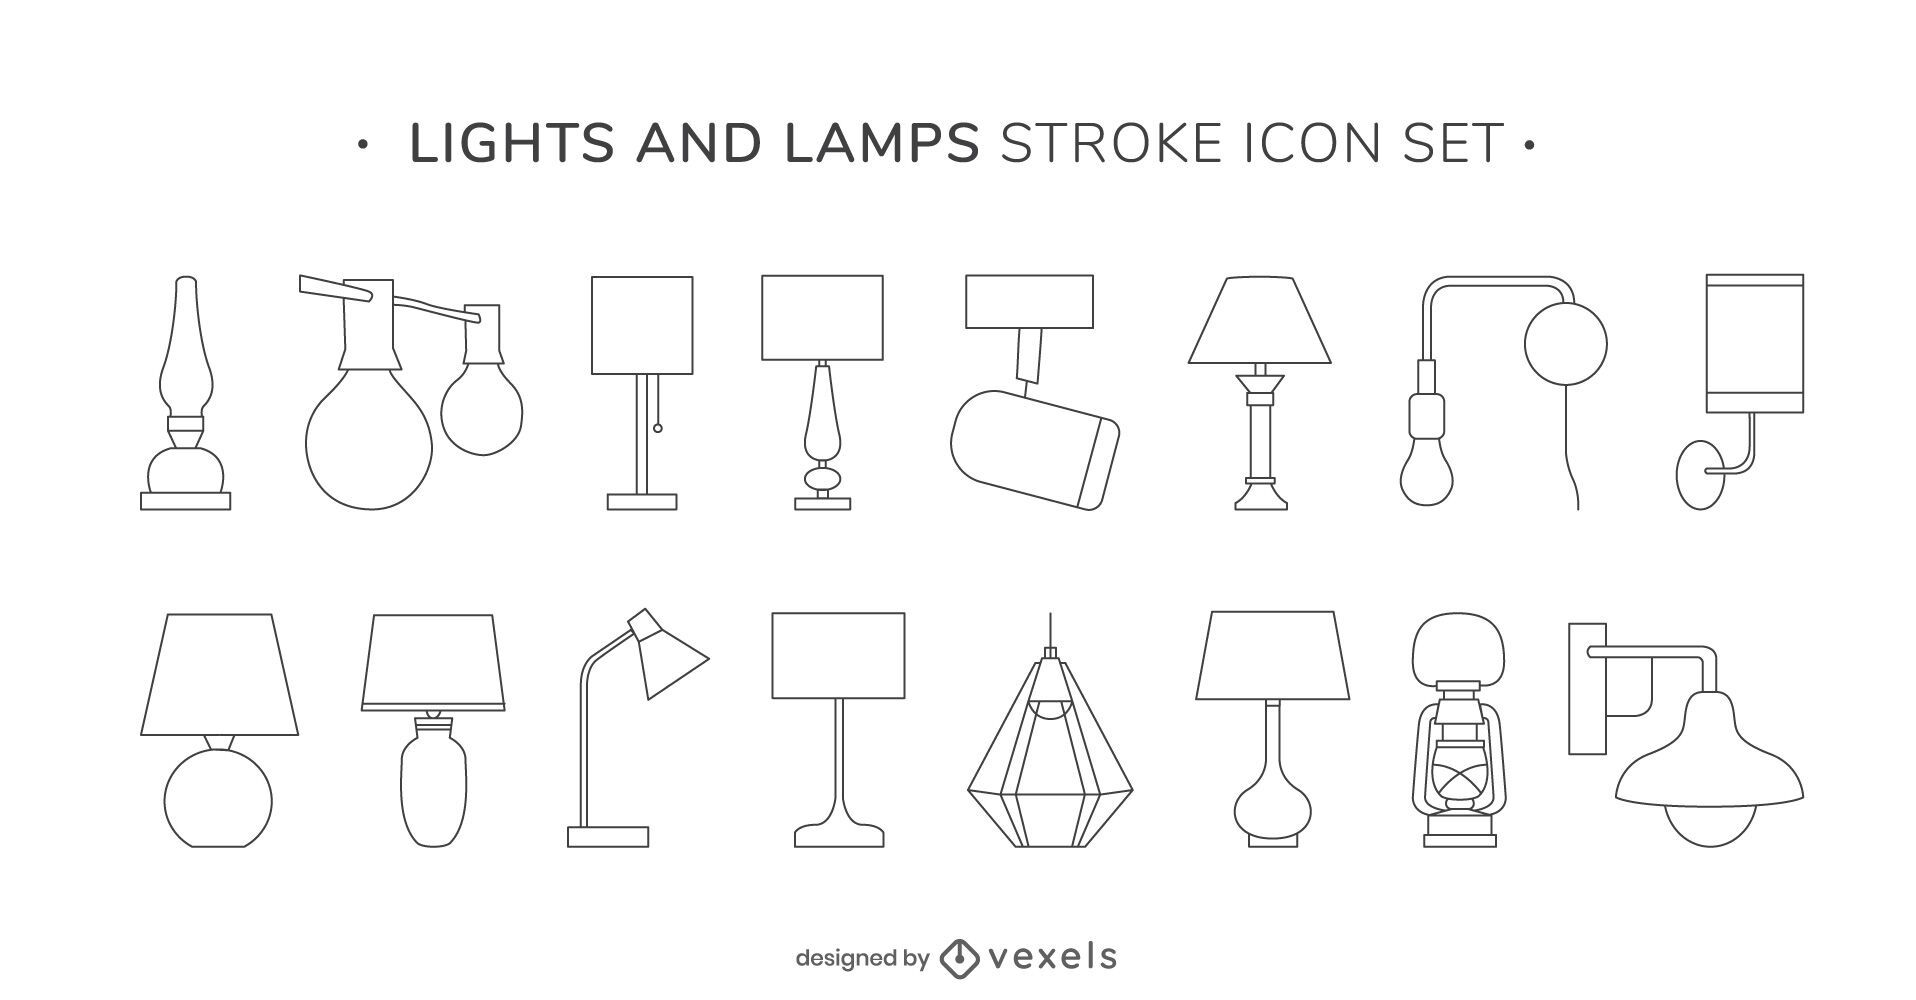 Lights and lamps stroke icon set